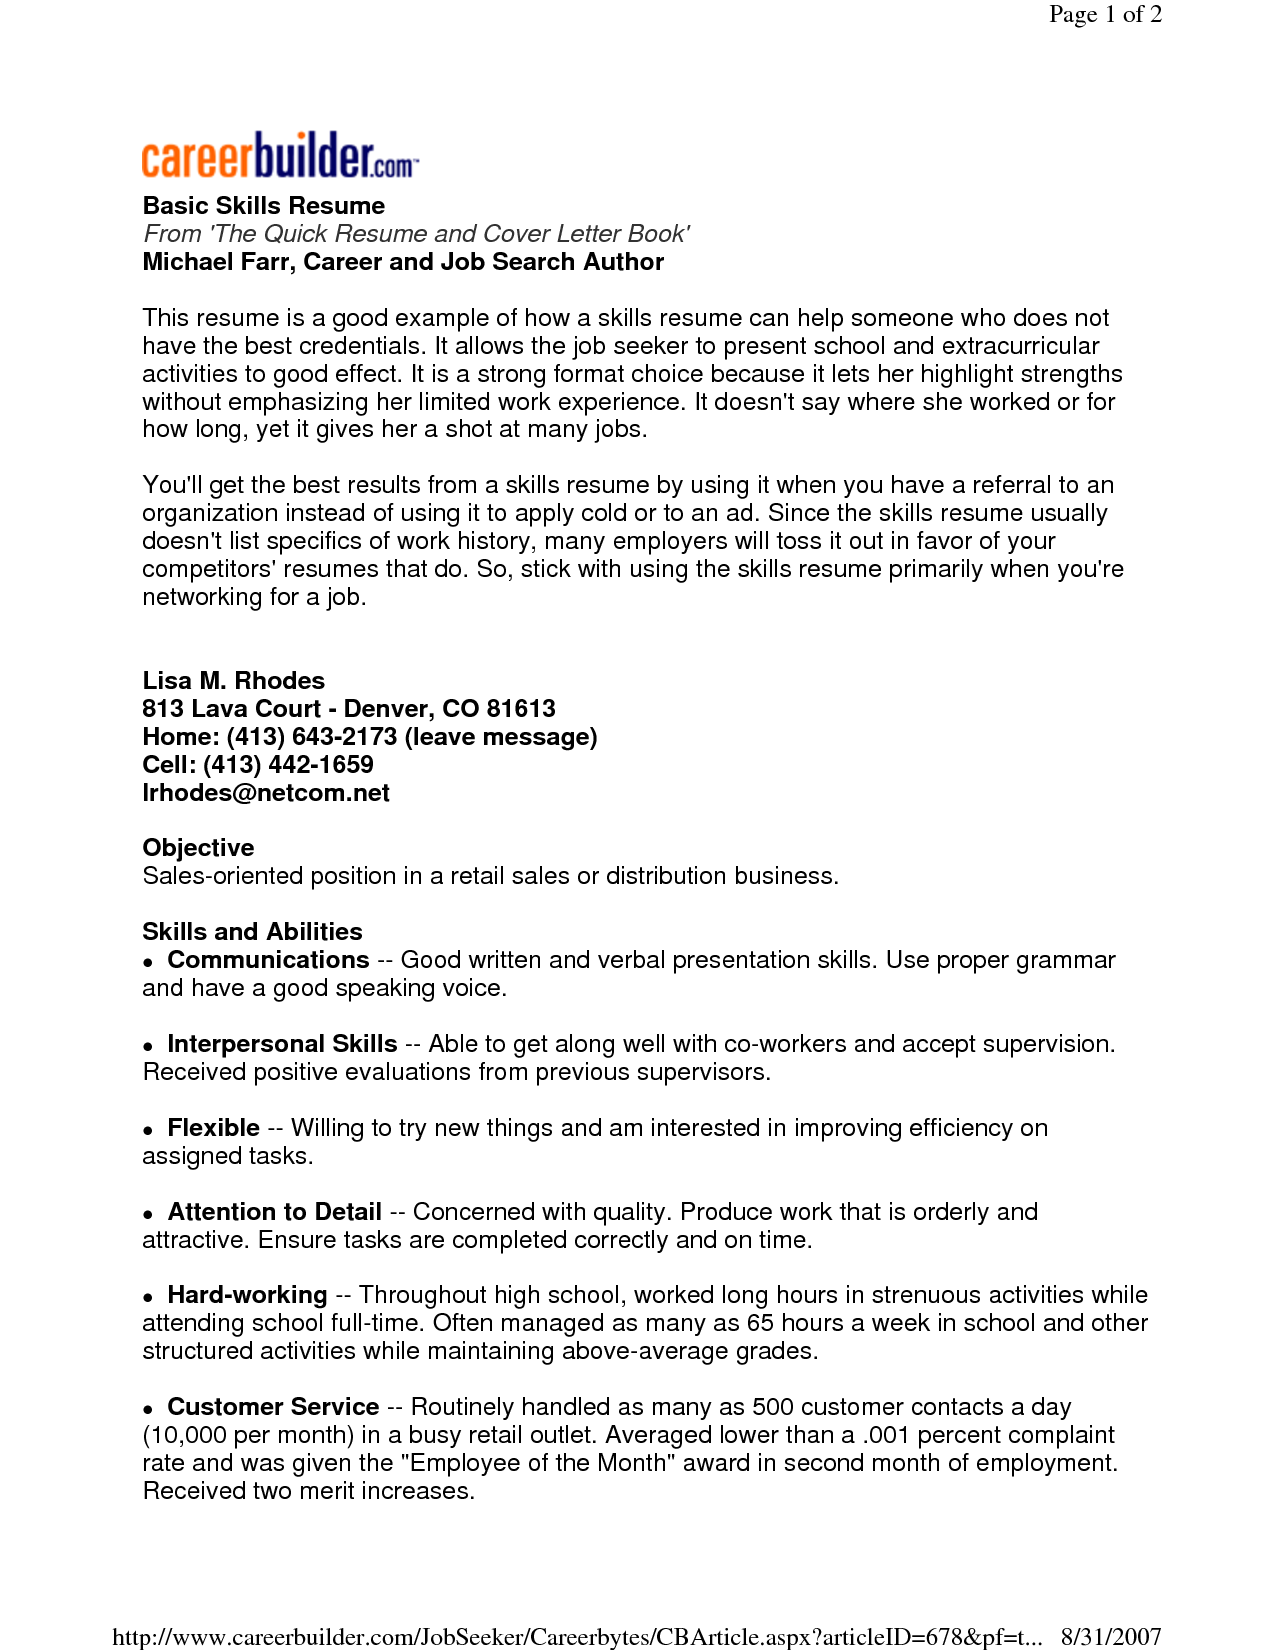 Examples Of Skills For Resume Adorable Basic Resume Examples Skills  Httpwww.resumecareerbasic .